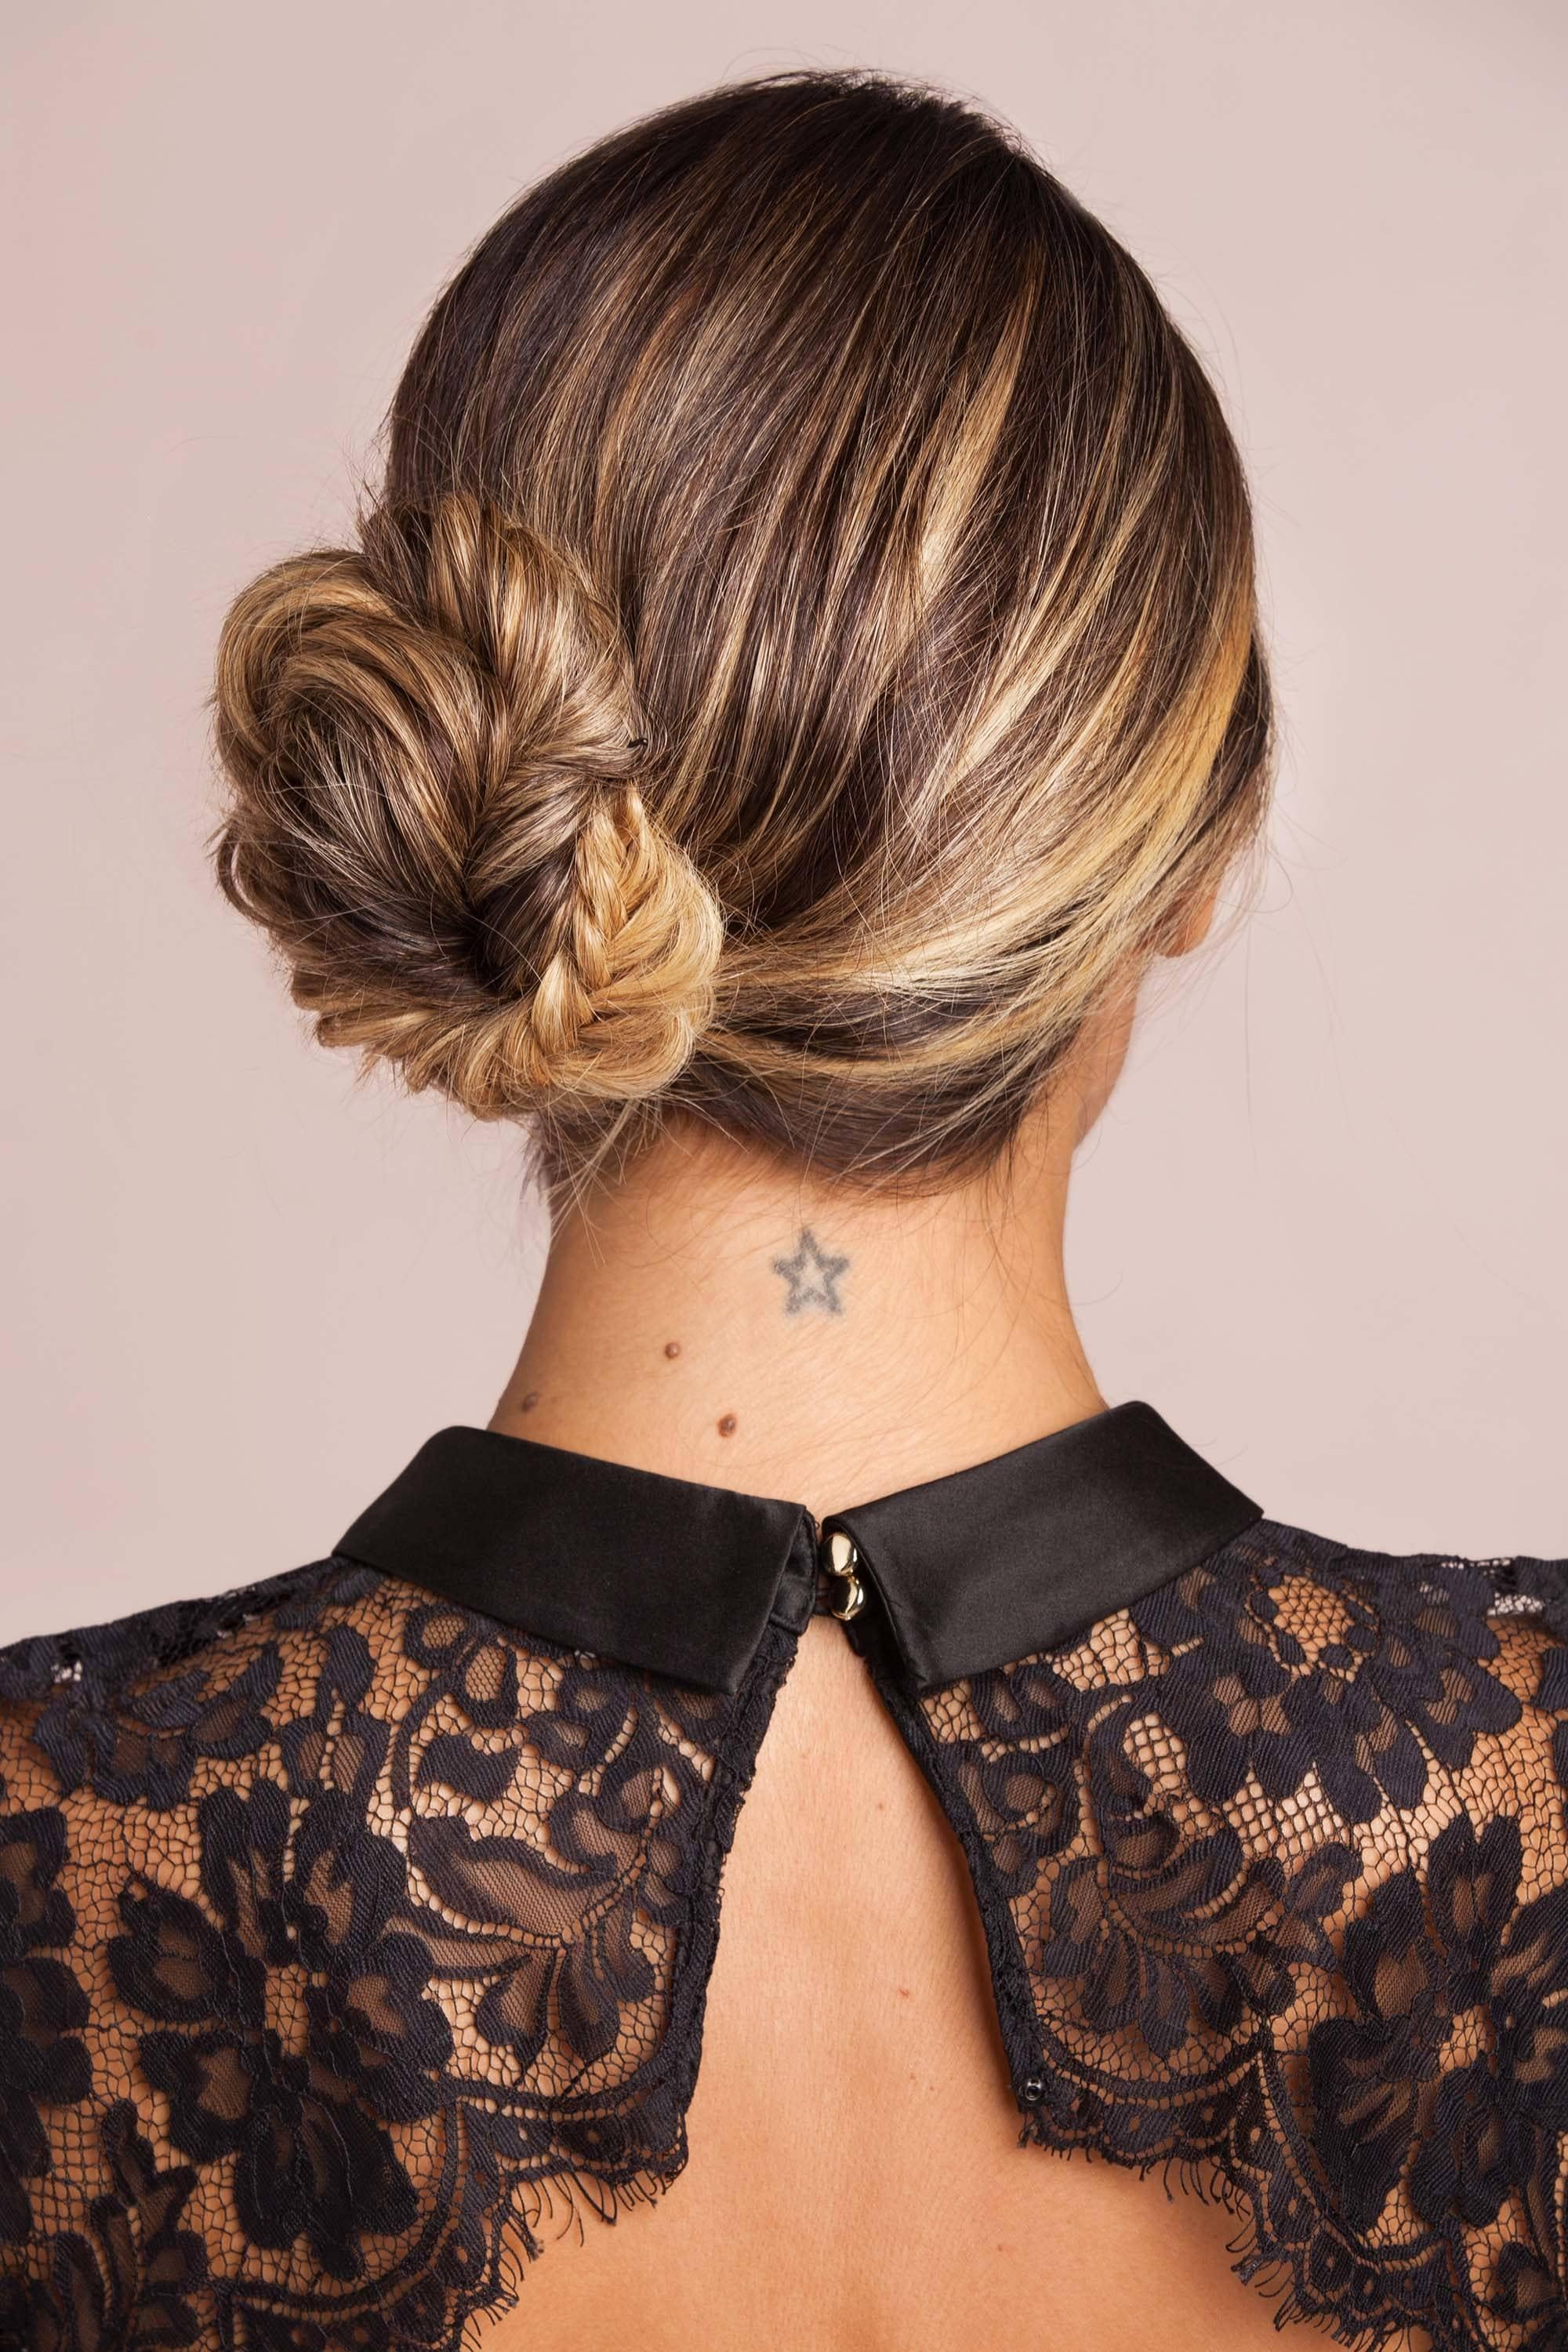 The Best Braided Bun Hairstyles You Can Easily Make At Home